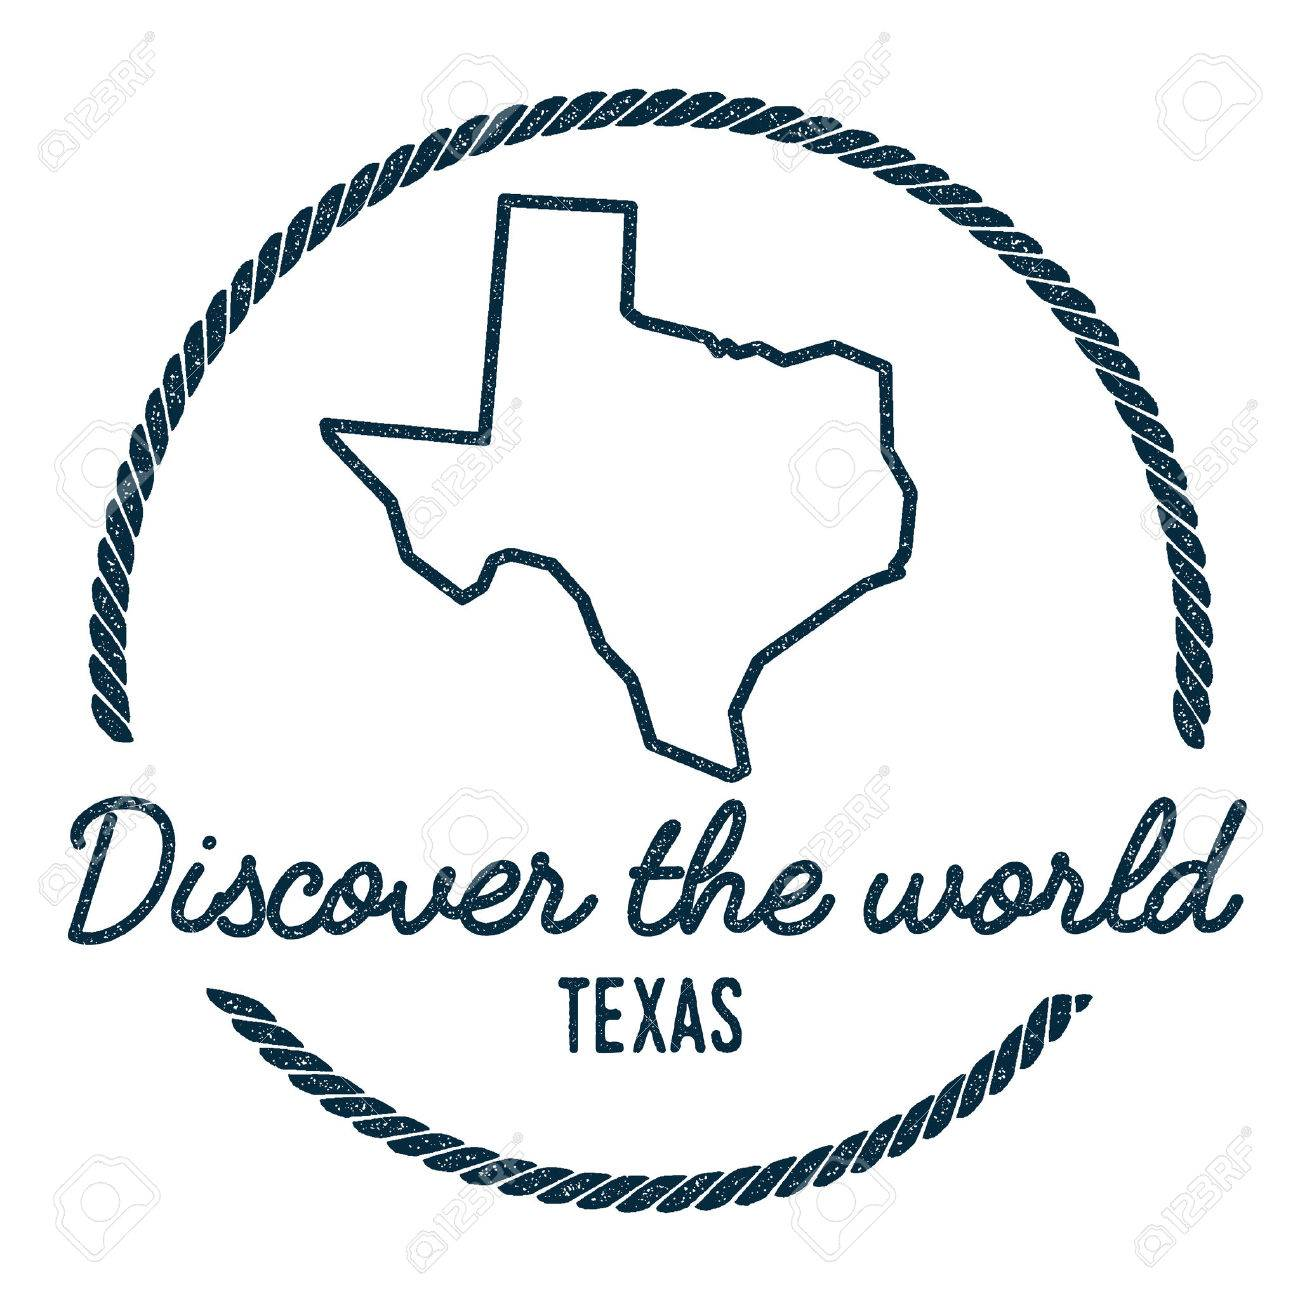 Outline Of Texas Map.Texas Map Outline Vintage Discover The World Rubber Stamp With